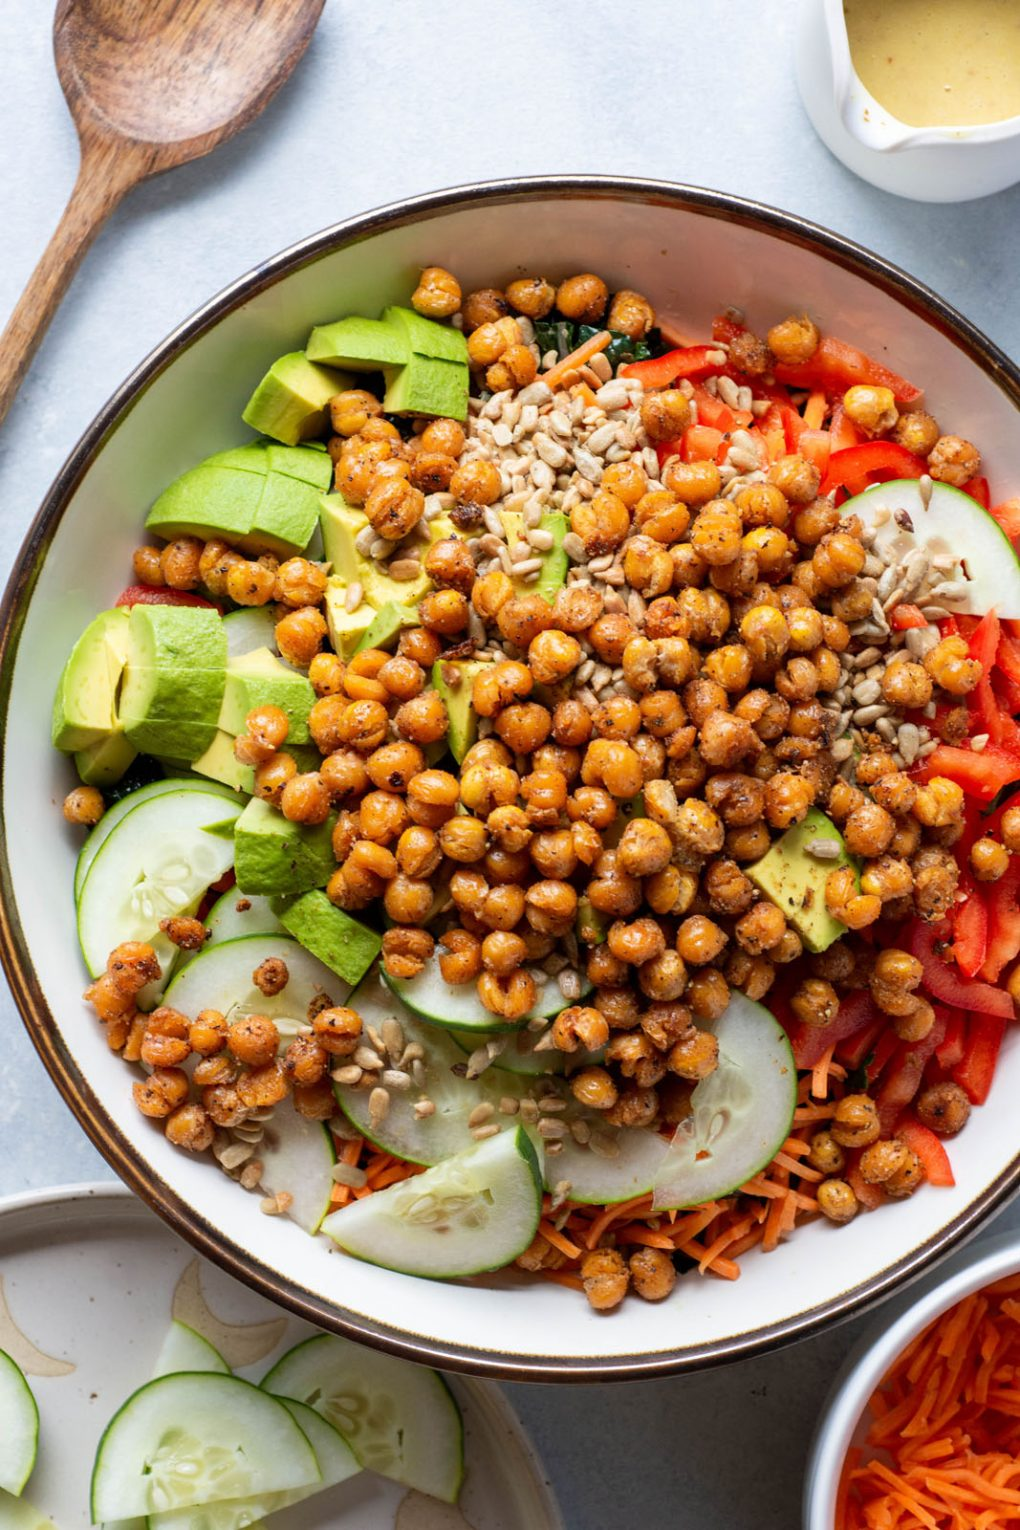 Overhead shot of a large white bowl filled with kale, shredded carrots, thinly sliced red pepper, thinly sliced cucumber, avocado, sunflower seeds, and crispy chickpeas, on a light background